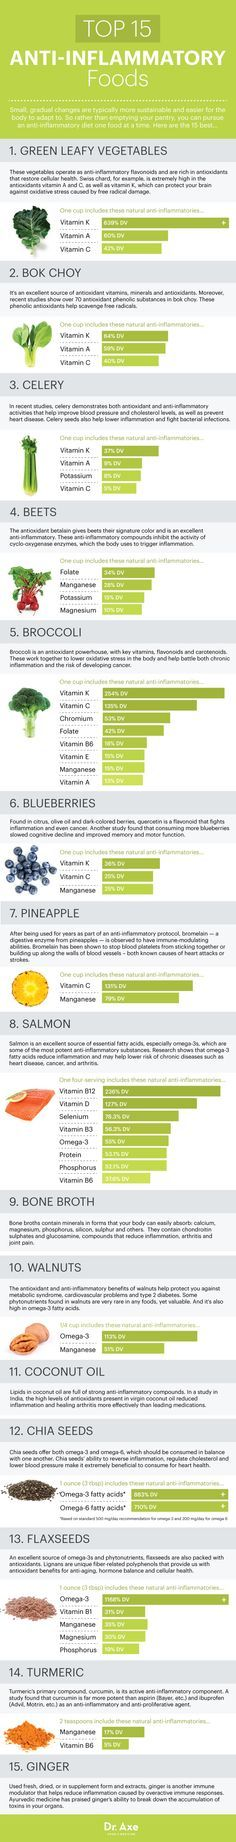 Hypothyroidism Diet - Hypothyroidism Revolution - Top 15 Anti-Inflammatory Foods [Infographic] Thyrotropin levels and risk of fatal coronary heart disease: the HUNT study. Get the Entire Hypothyroidism Revolution System Today Natural Cure For Arthritis, Natural Cures, Natural Health, Natural Treatments, Health And Nutrition, Health Tips, Health Foods, Health Fitness, Antinflammatory Foods